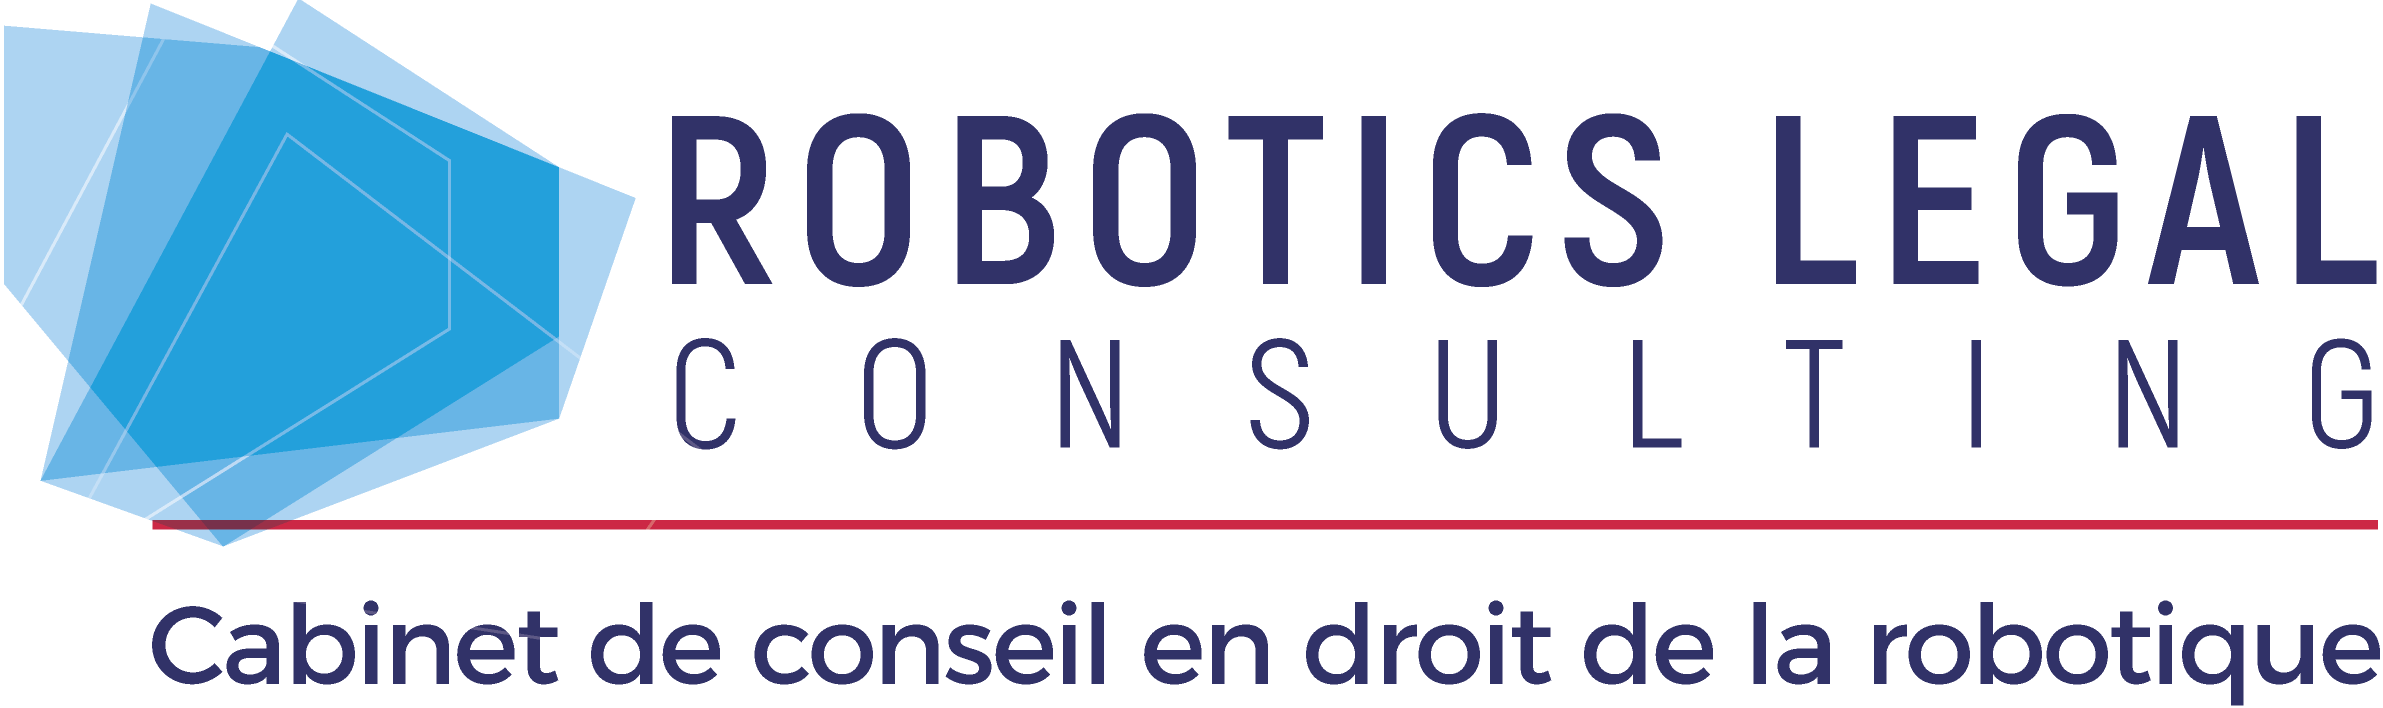 Robotics Legal Consulting